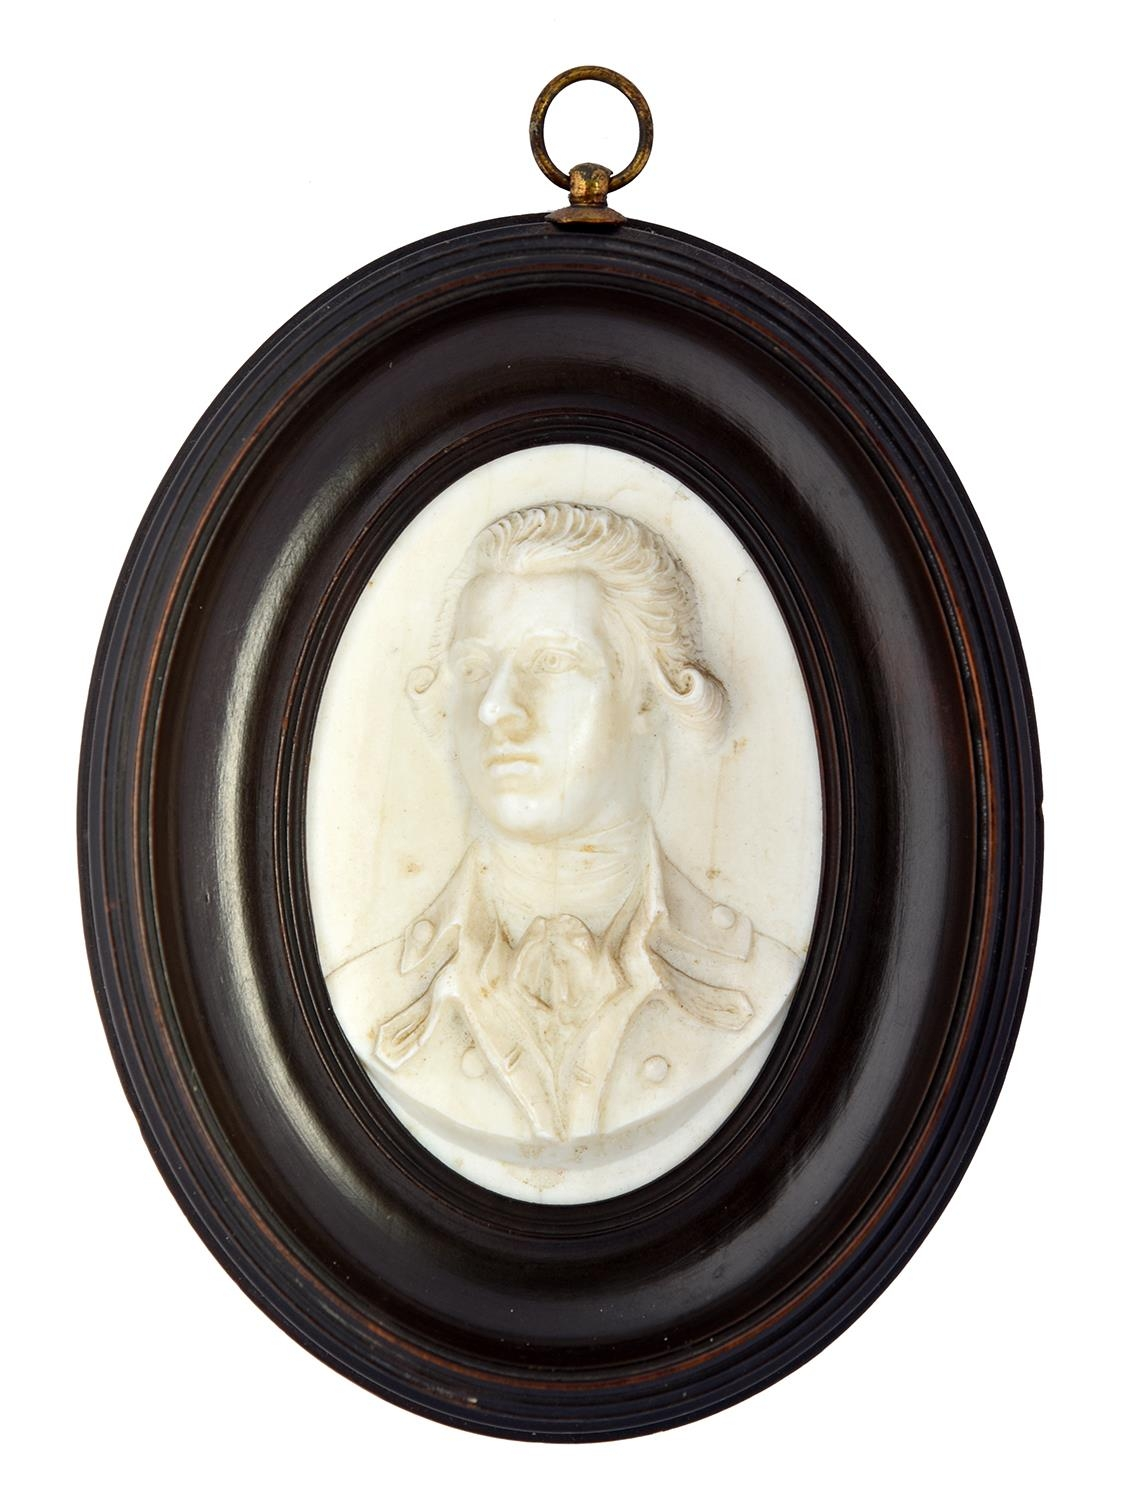 A glass paste portrait medallion of WilliamPitt the Younger, c1806impressed W Pitt to the